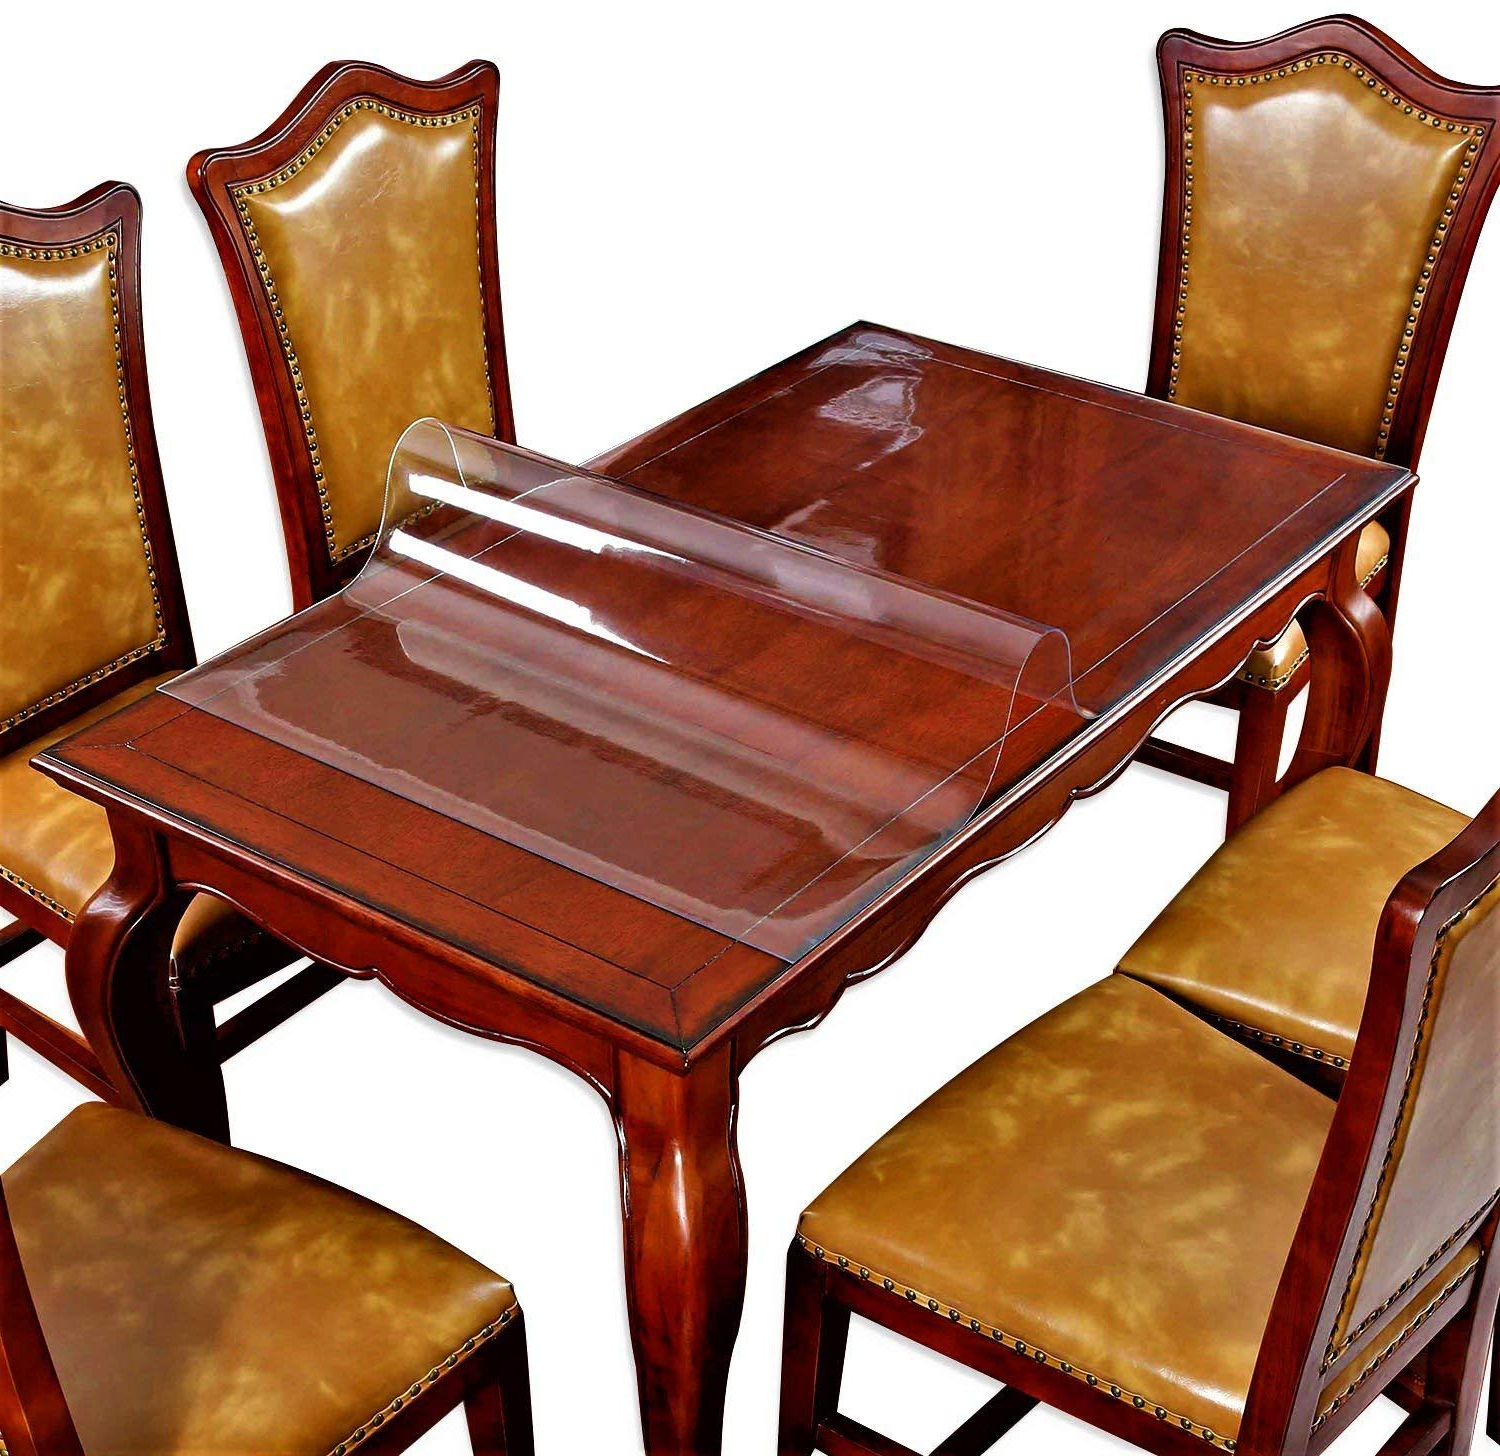 Current Clear Table Cover Protector Desk Pads Mats Wood Furniture Protective For Large Pub Bar Tabletop Countertop Topper Dining Coffee End Plastic Tablecloth Throughout Presson 3 Piece Counter Height Dining Sets (View 20 of 20)